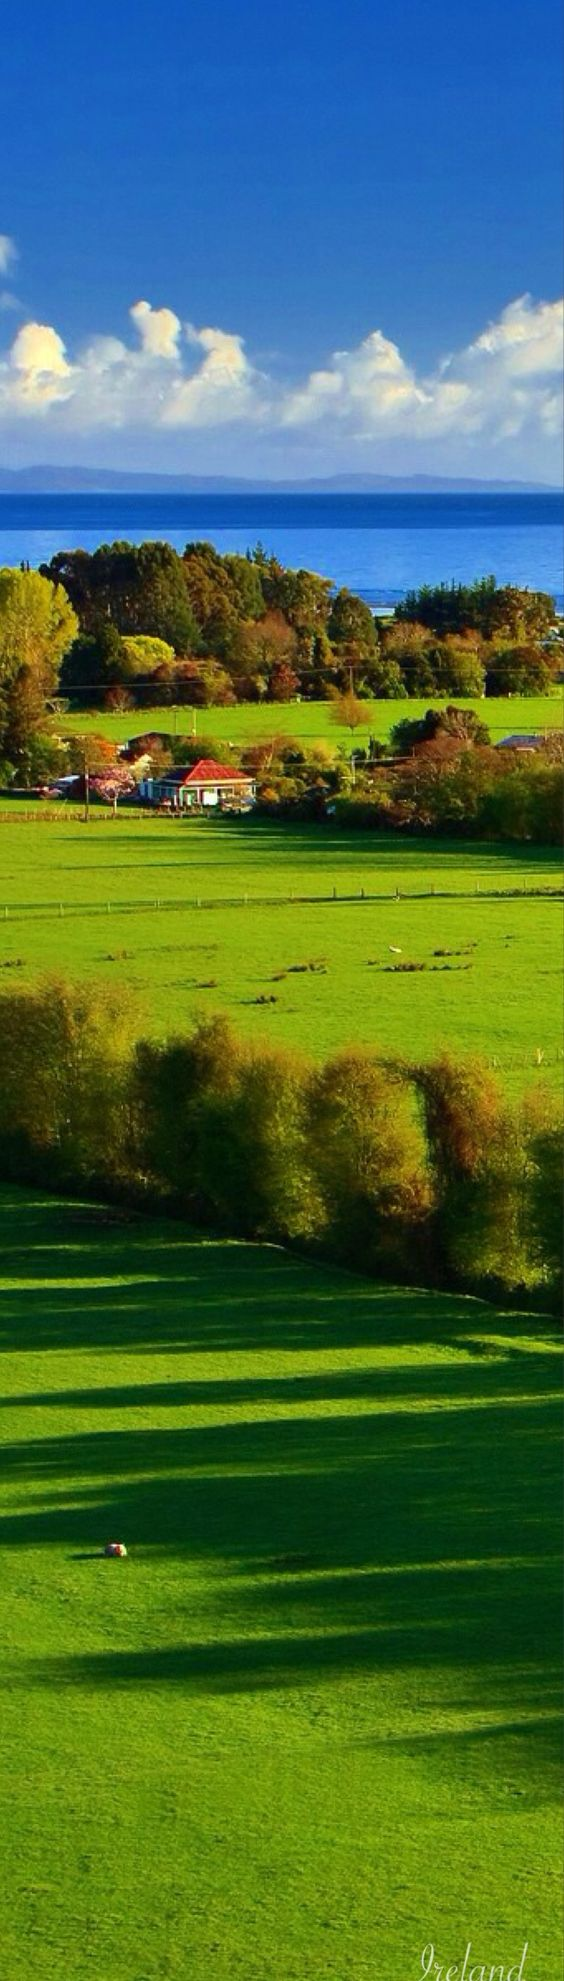 Ireland, Lush green and What a beautiful day on Pinterest